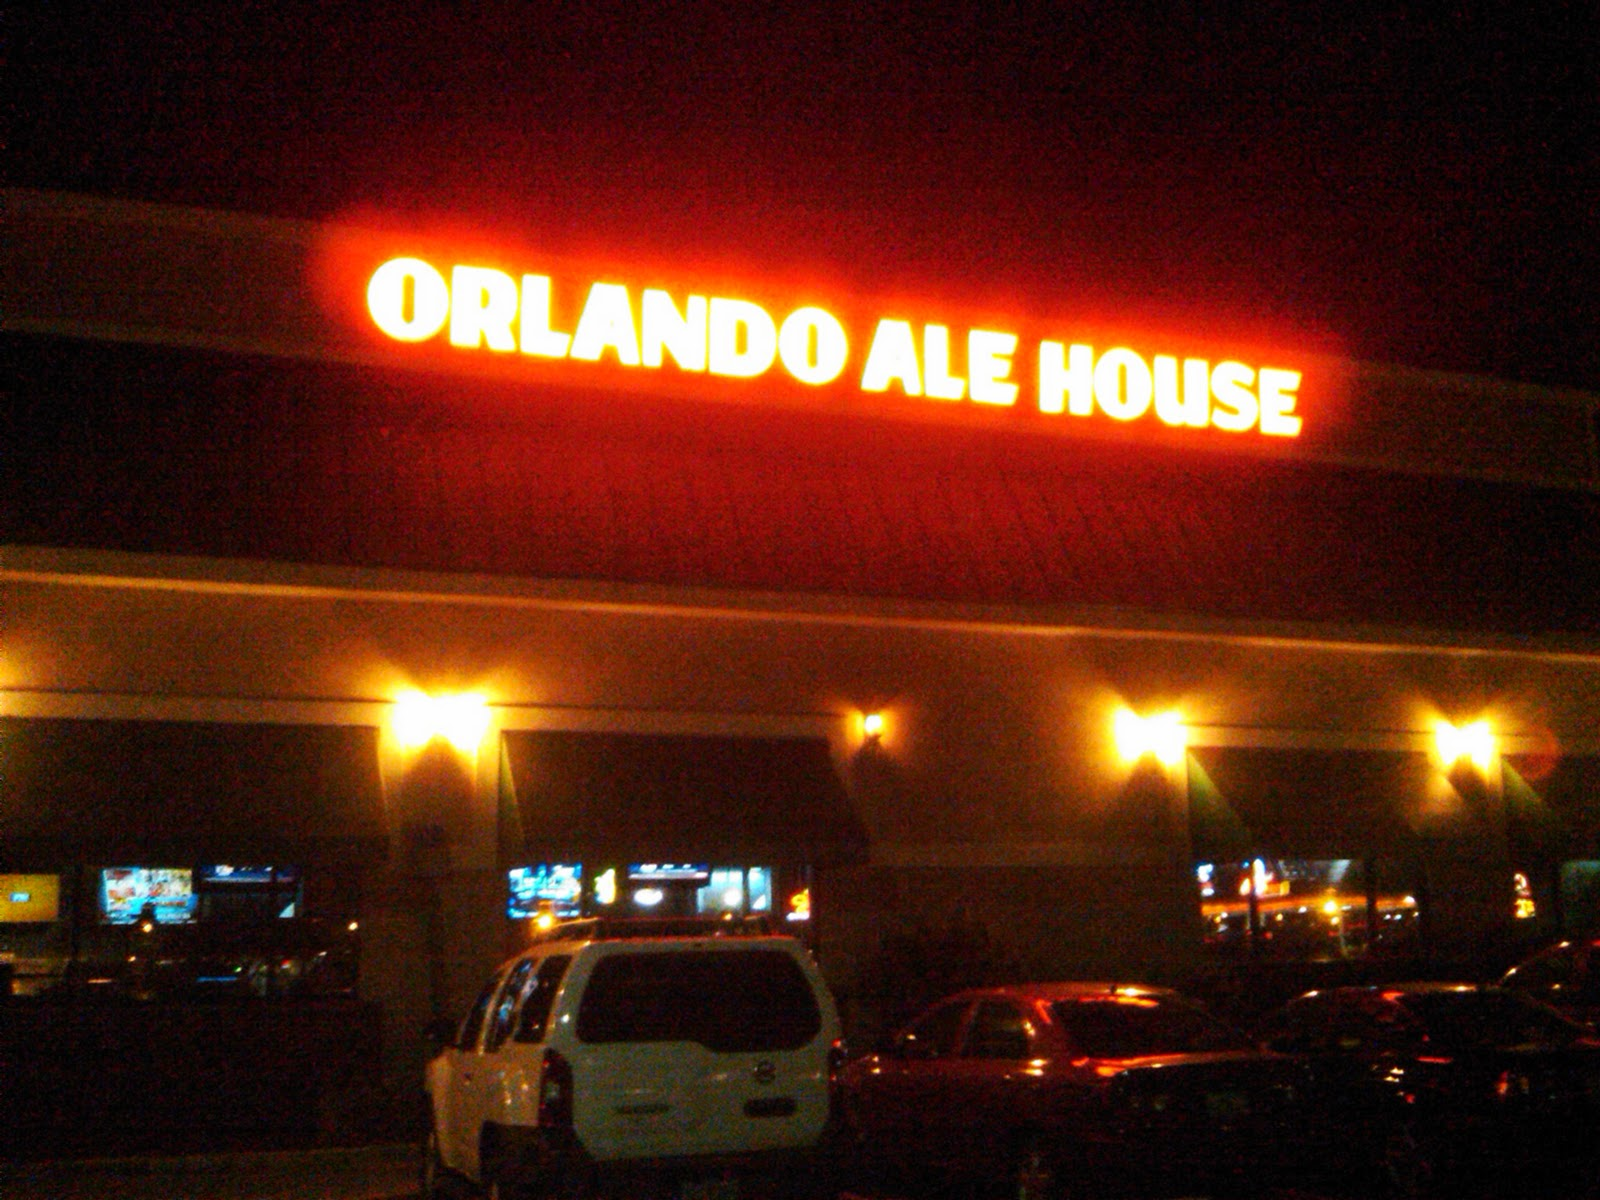 Engy's: Night Out on the Town - Orlando Ale House